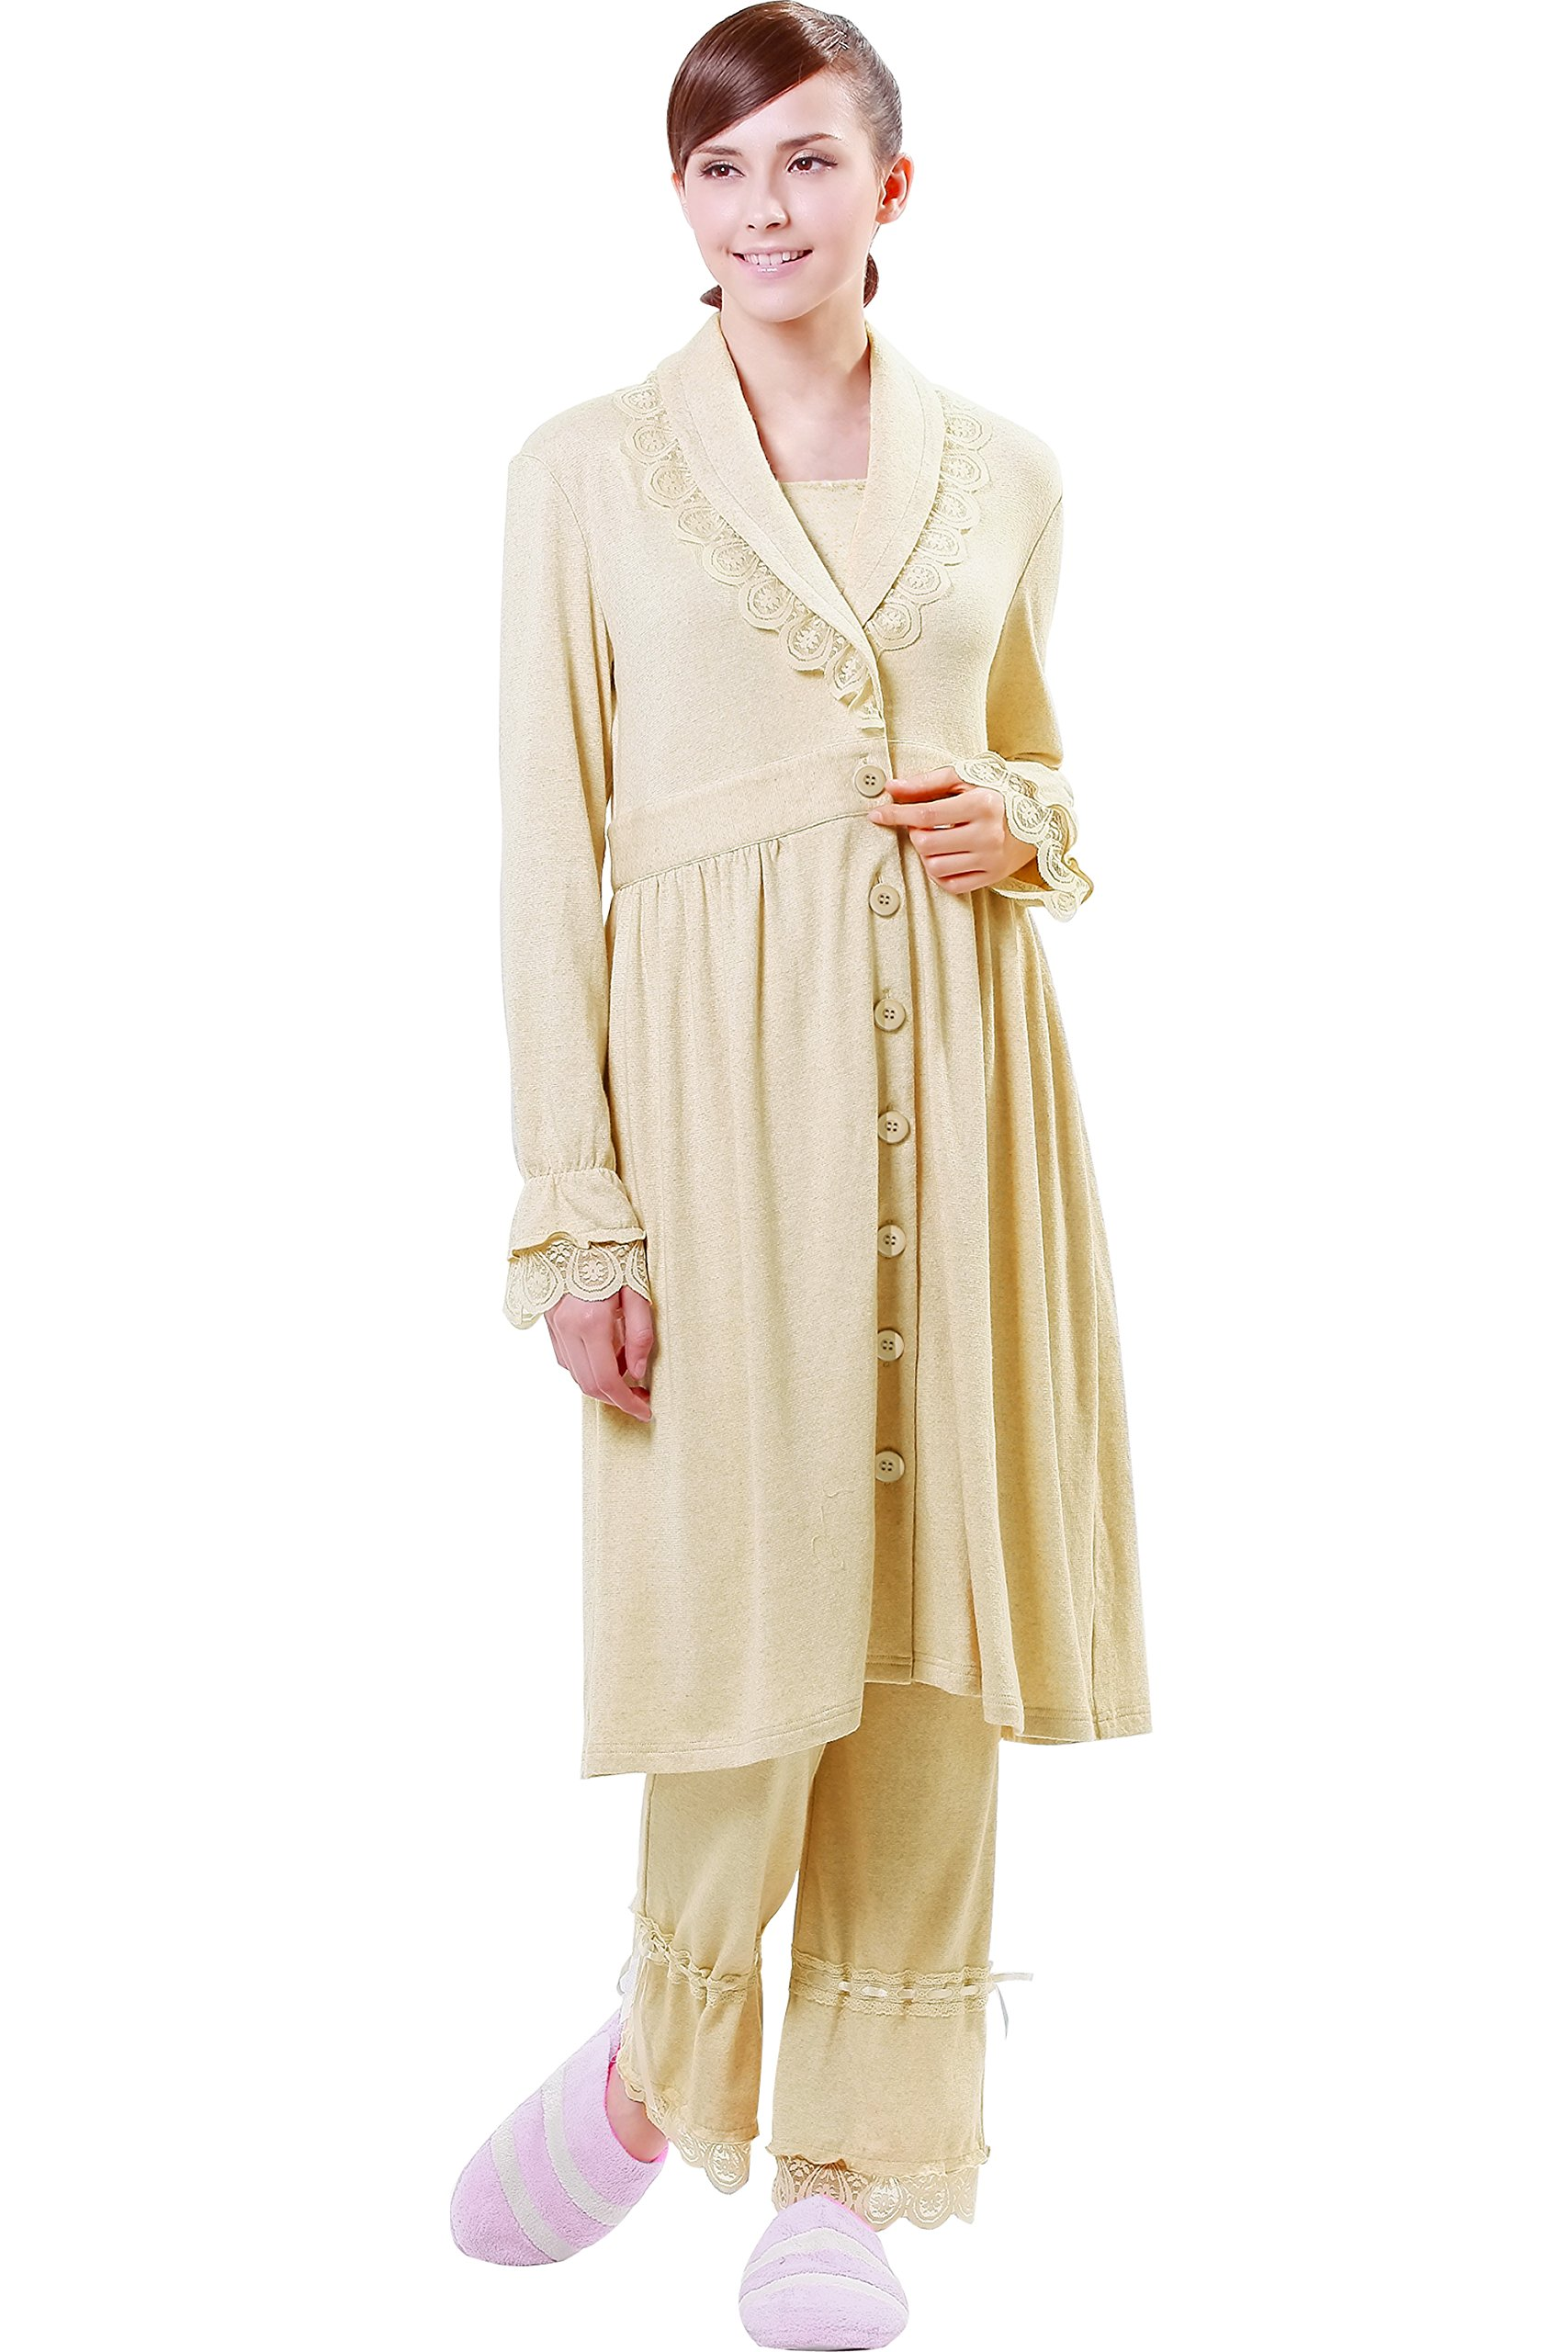 Sweet Mommy Organic Cotton Maternity and Nursing Pajama Set LightBeige, L by Sweet Mommy